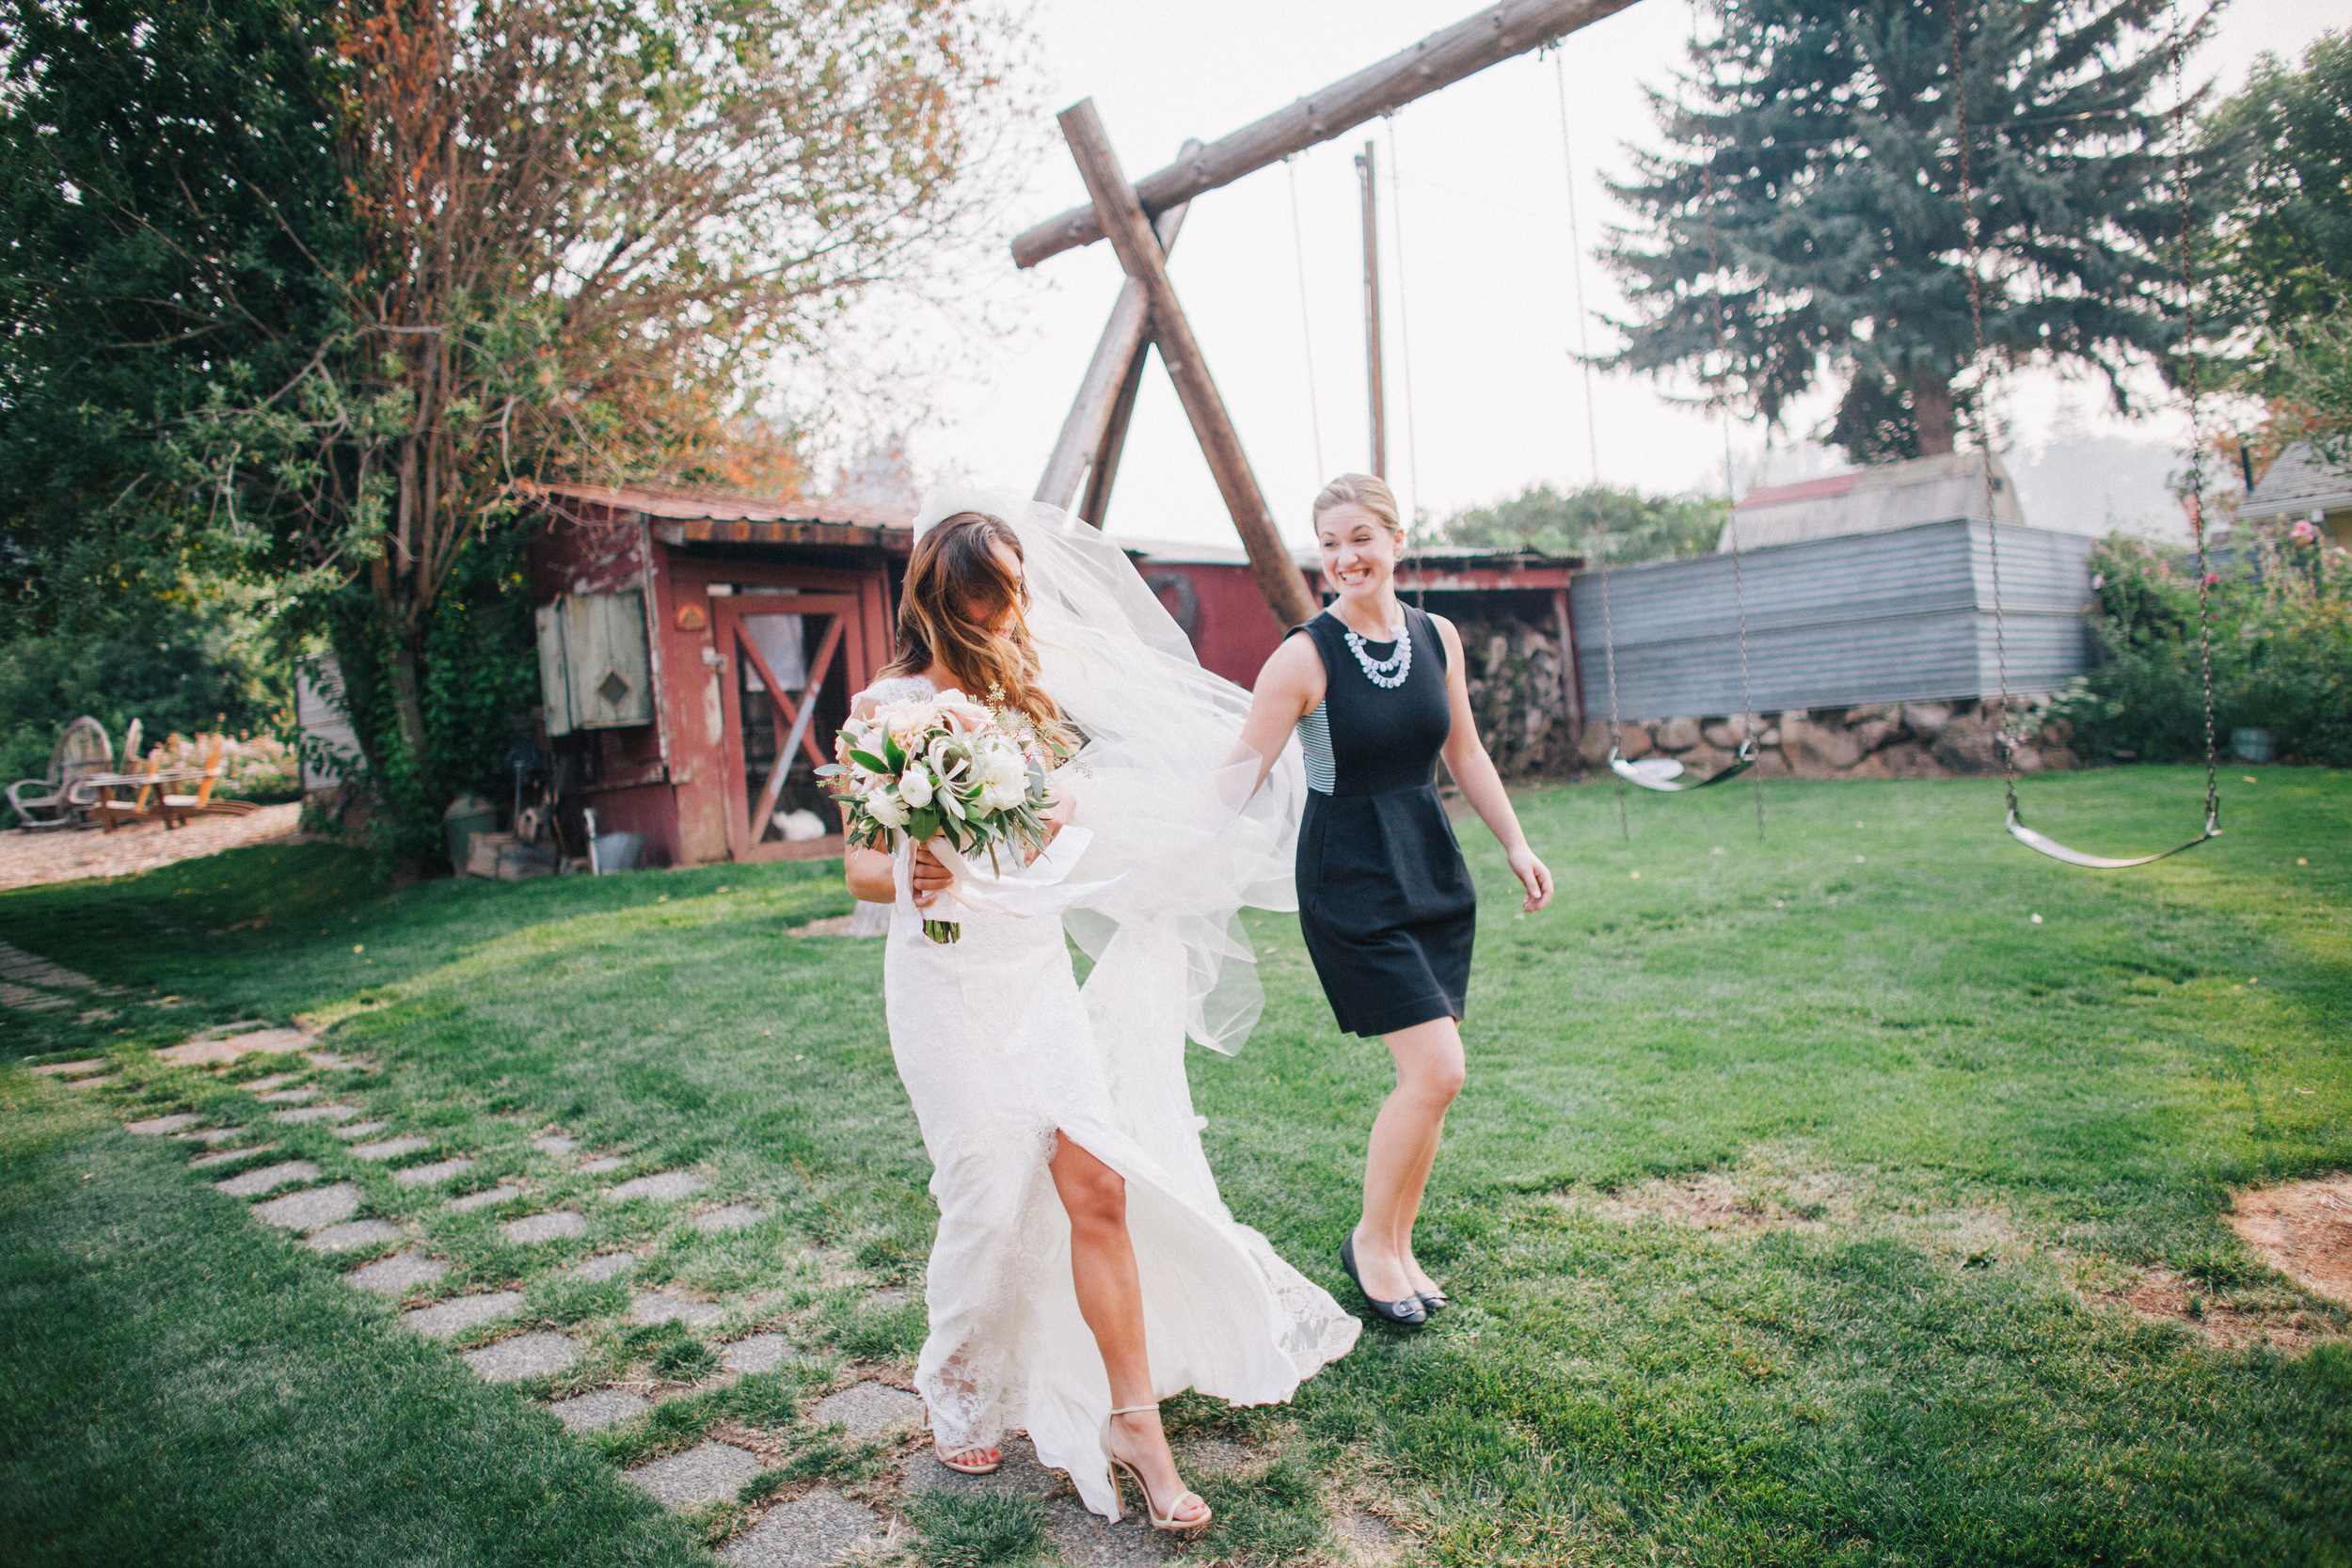 Bridal Bliss.com | Portland Seattle Wedding Planning + Design | Jessica Watson Photography